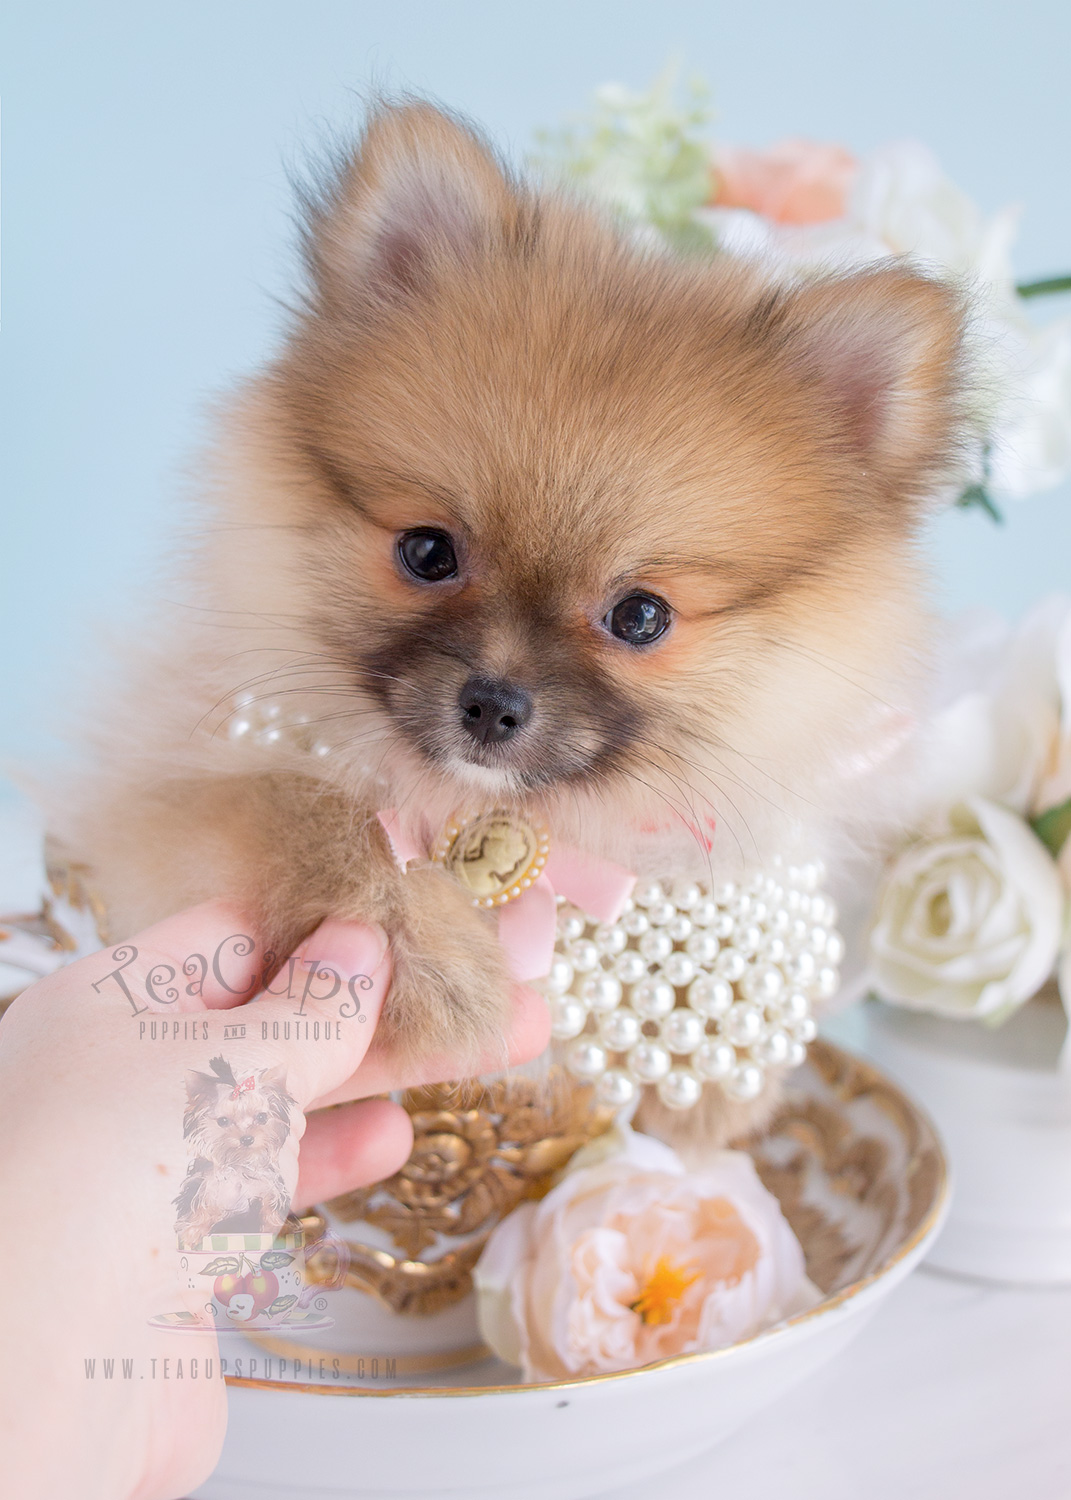 For Sale 260 Tiny Pomeranian Puppy